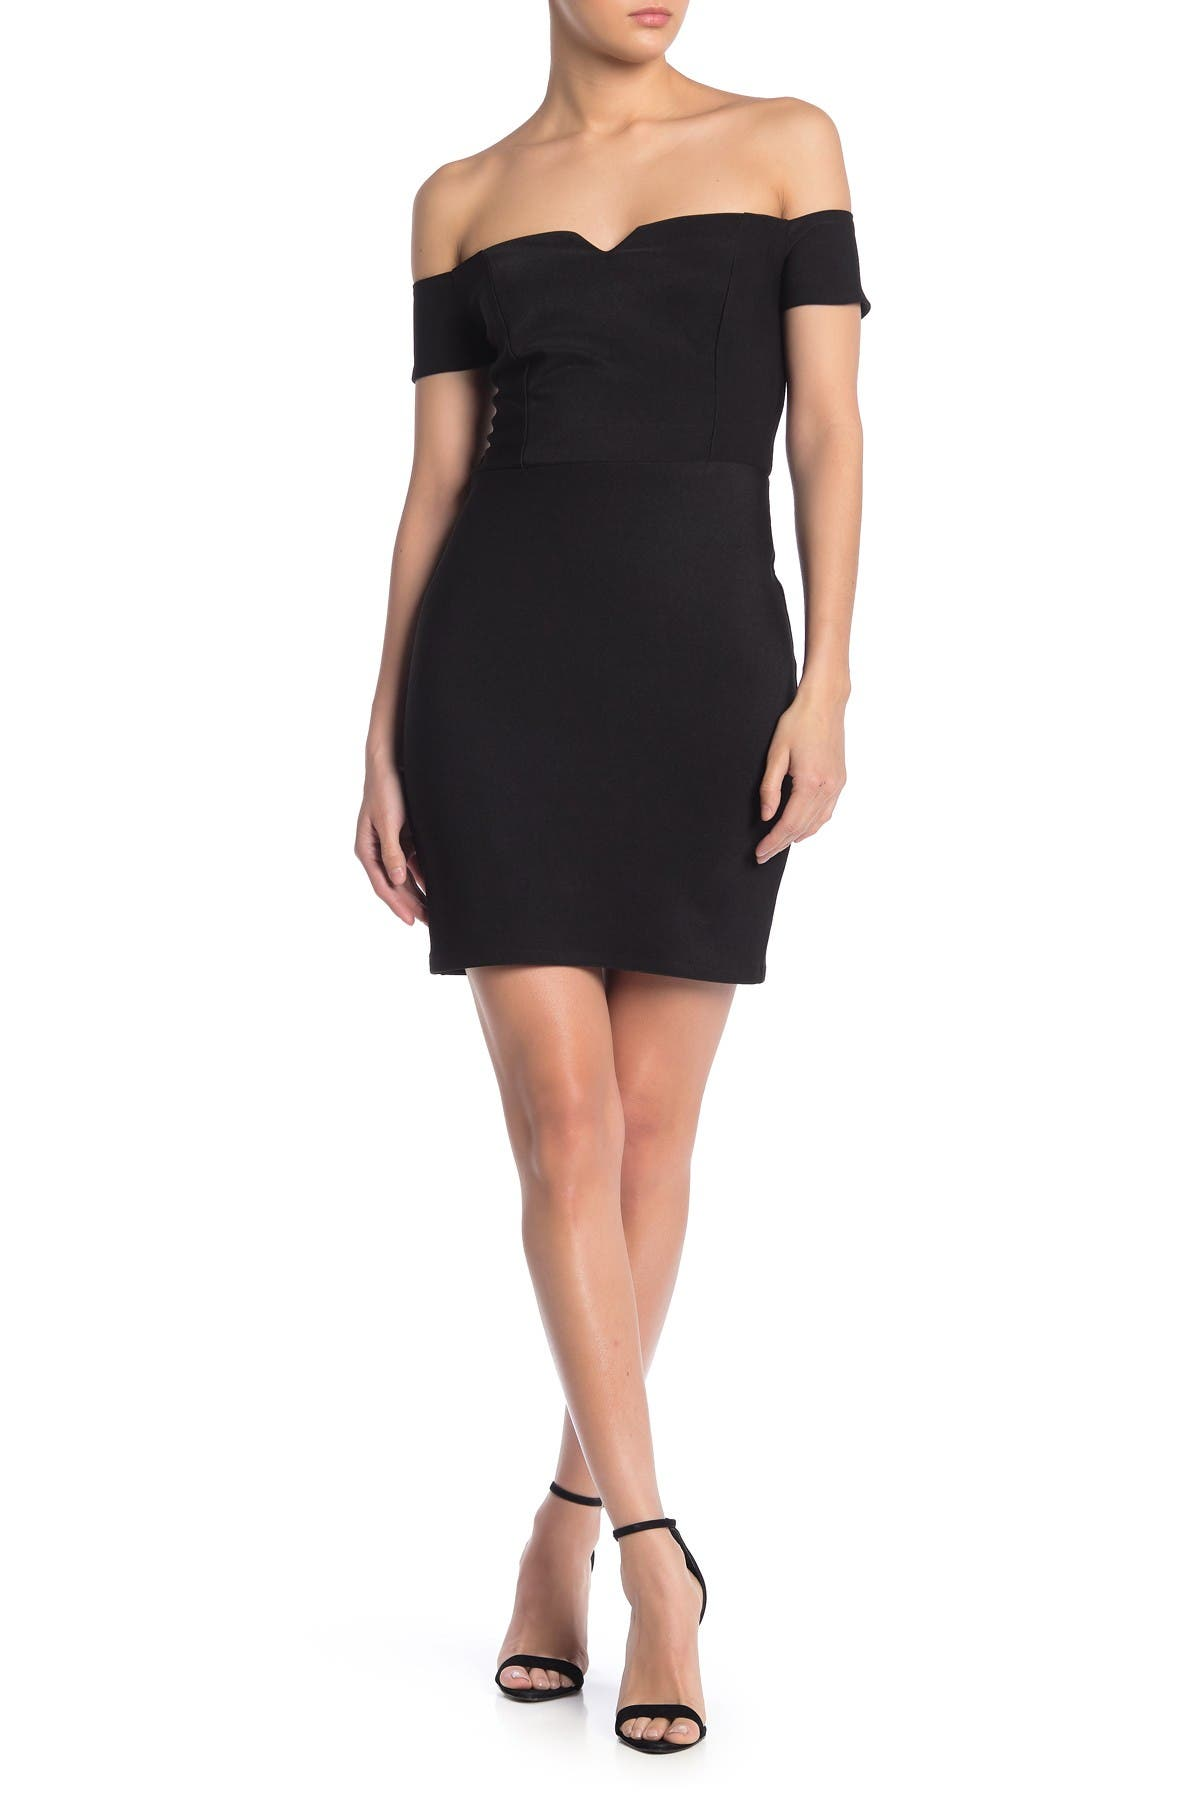 Image of JUMP Notched Off-the-Shoulder Bodycon Dress